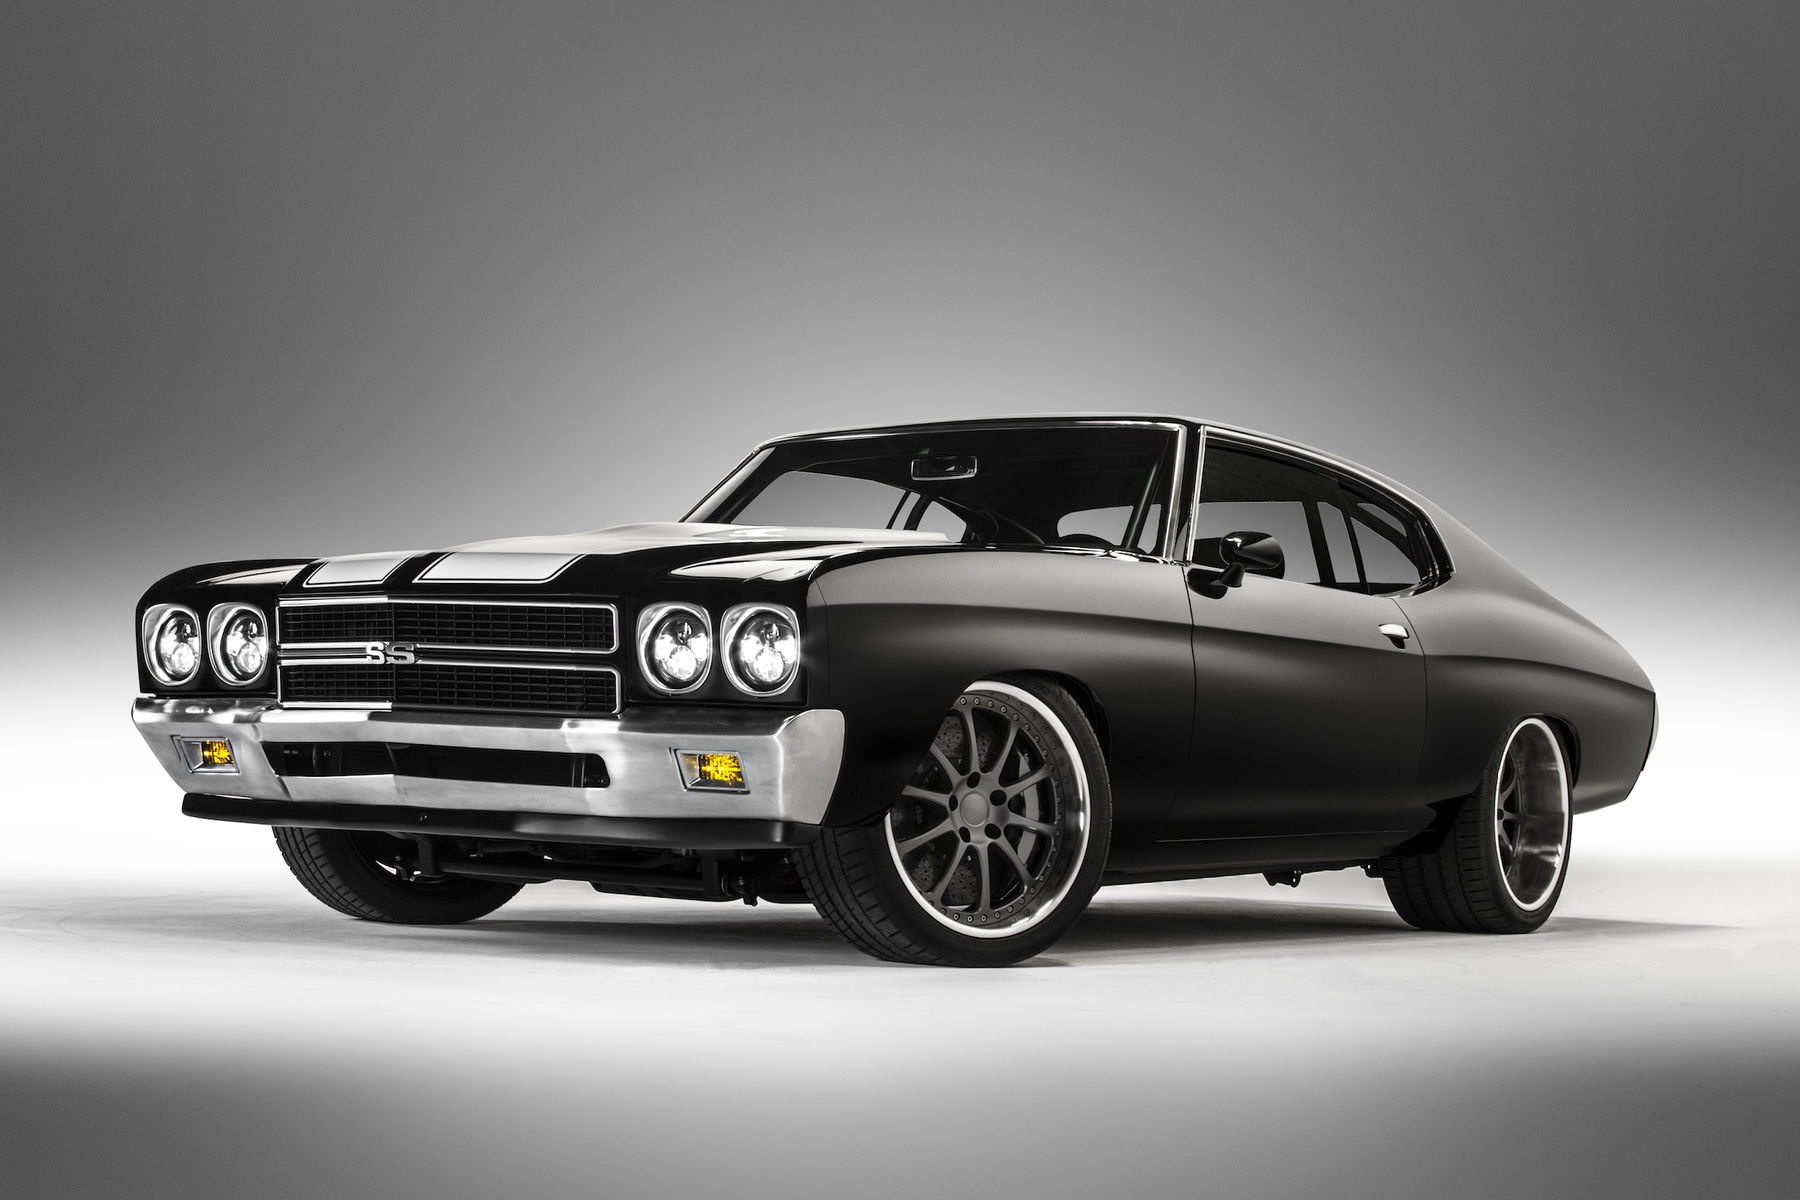 1970 Chevrolet Chevelle | Moe's 1970 Chevelle SS on Forgeline ZX3P Wheels